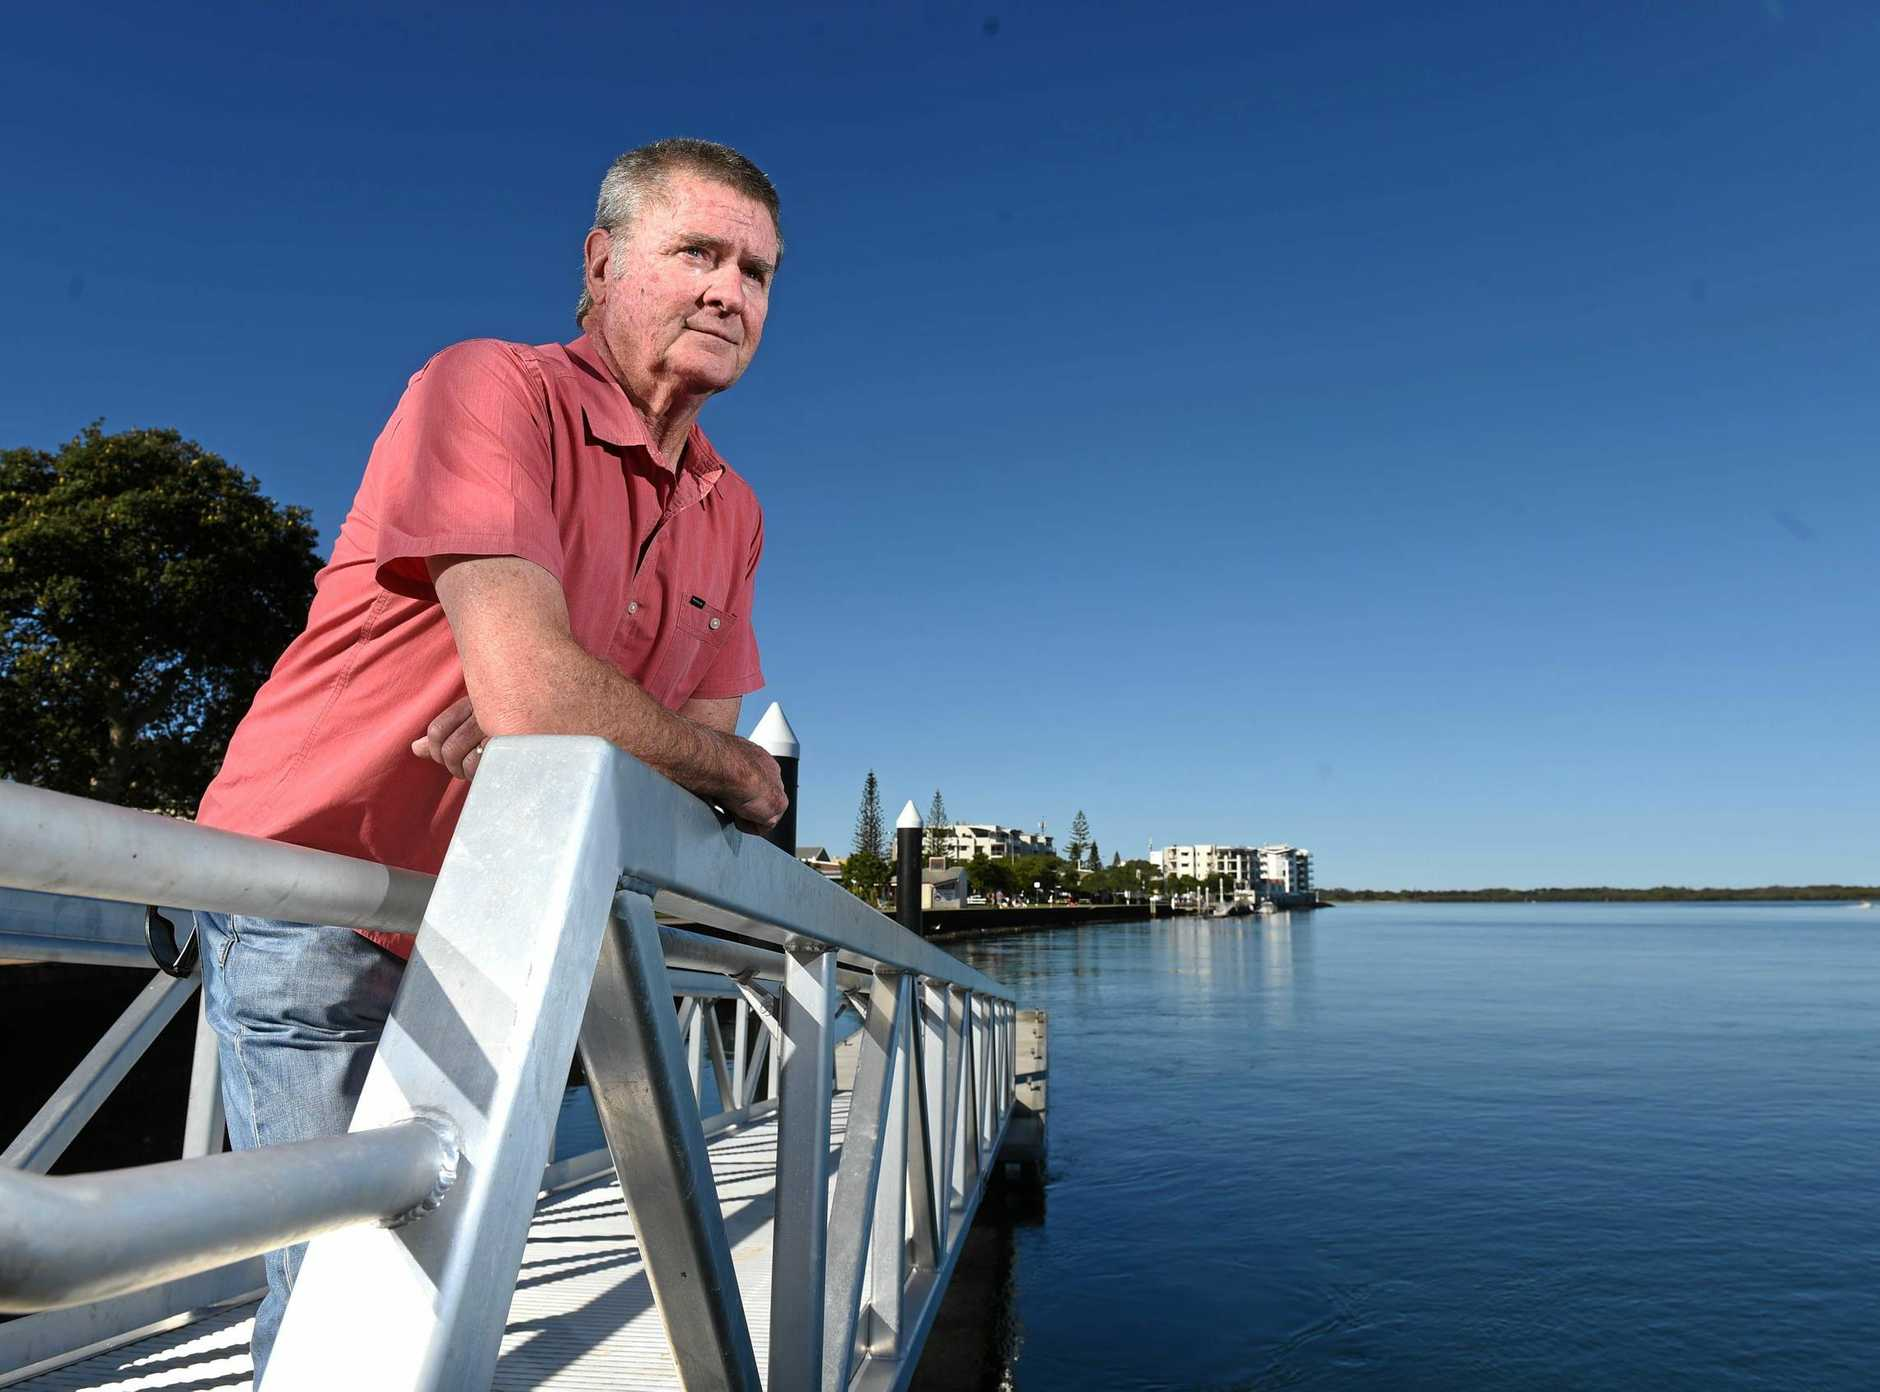 Chris Cooke, 65, was at the Ballina RSL Club with his wife, daughter and 19-month-old grandson when he decided to take his grandson for a walk in his pram to look at the river.